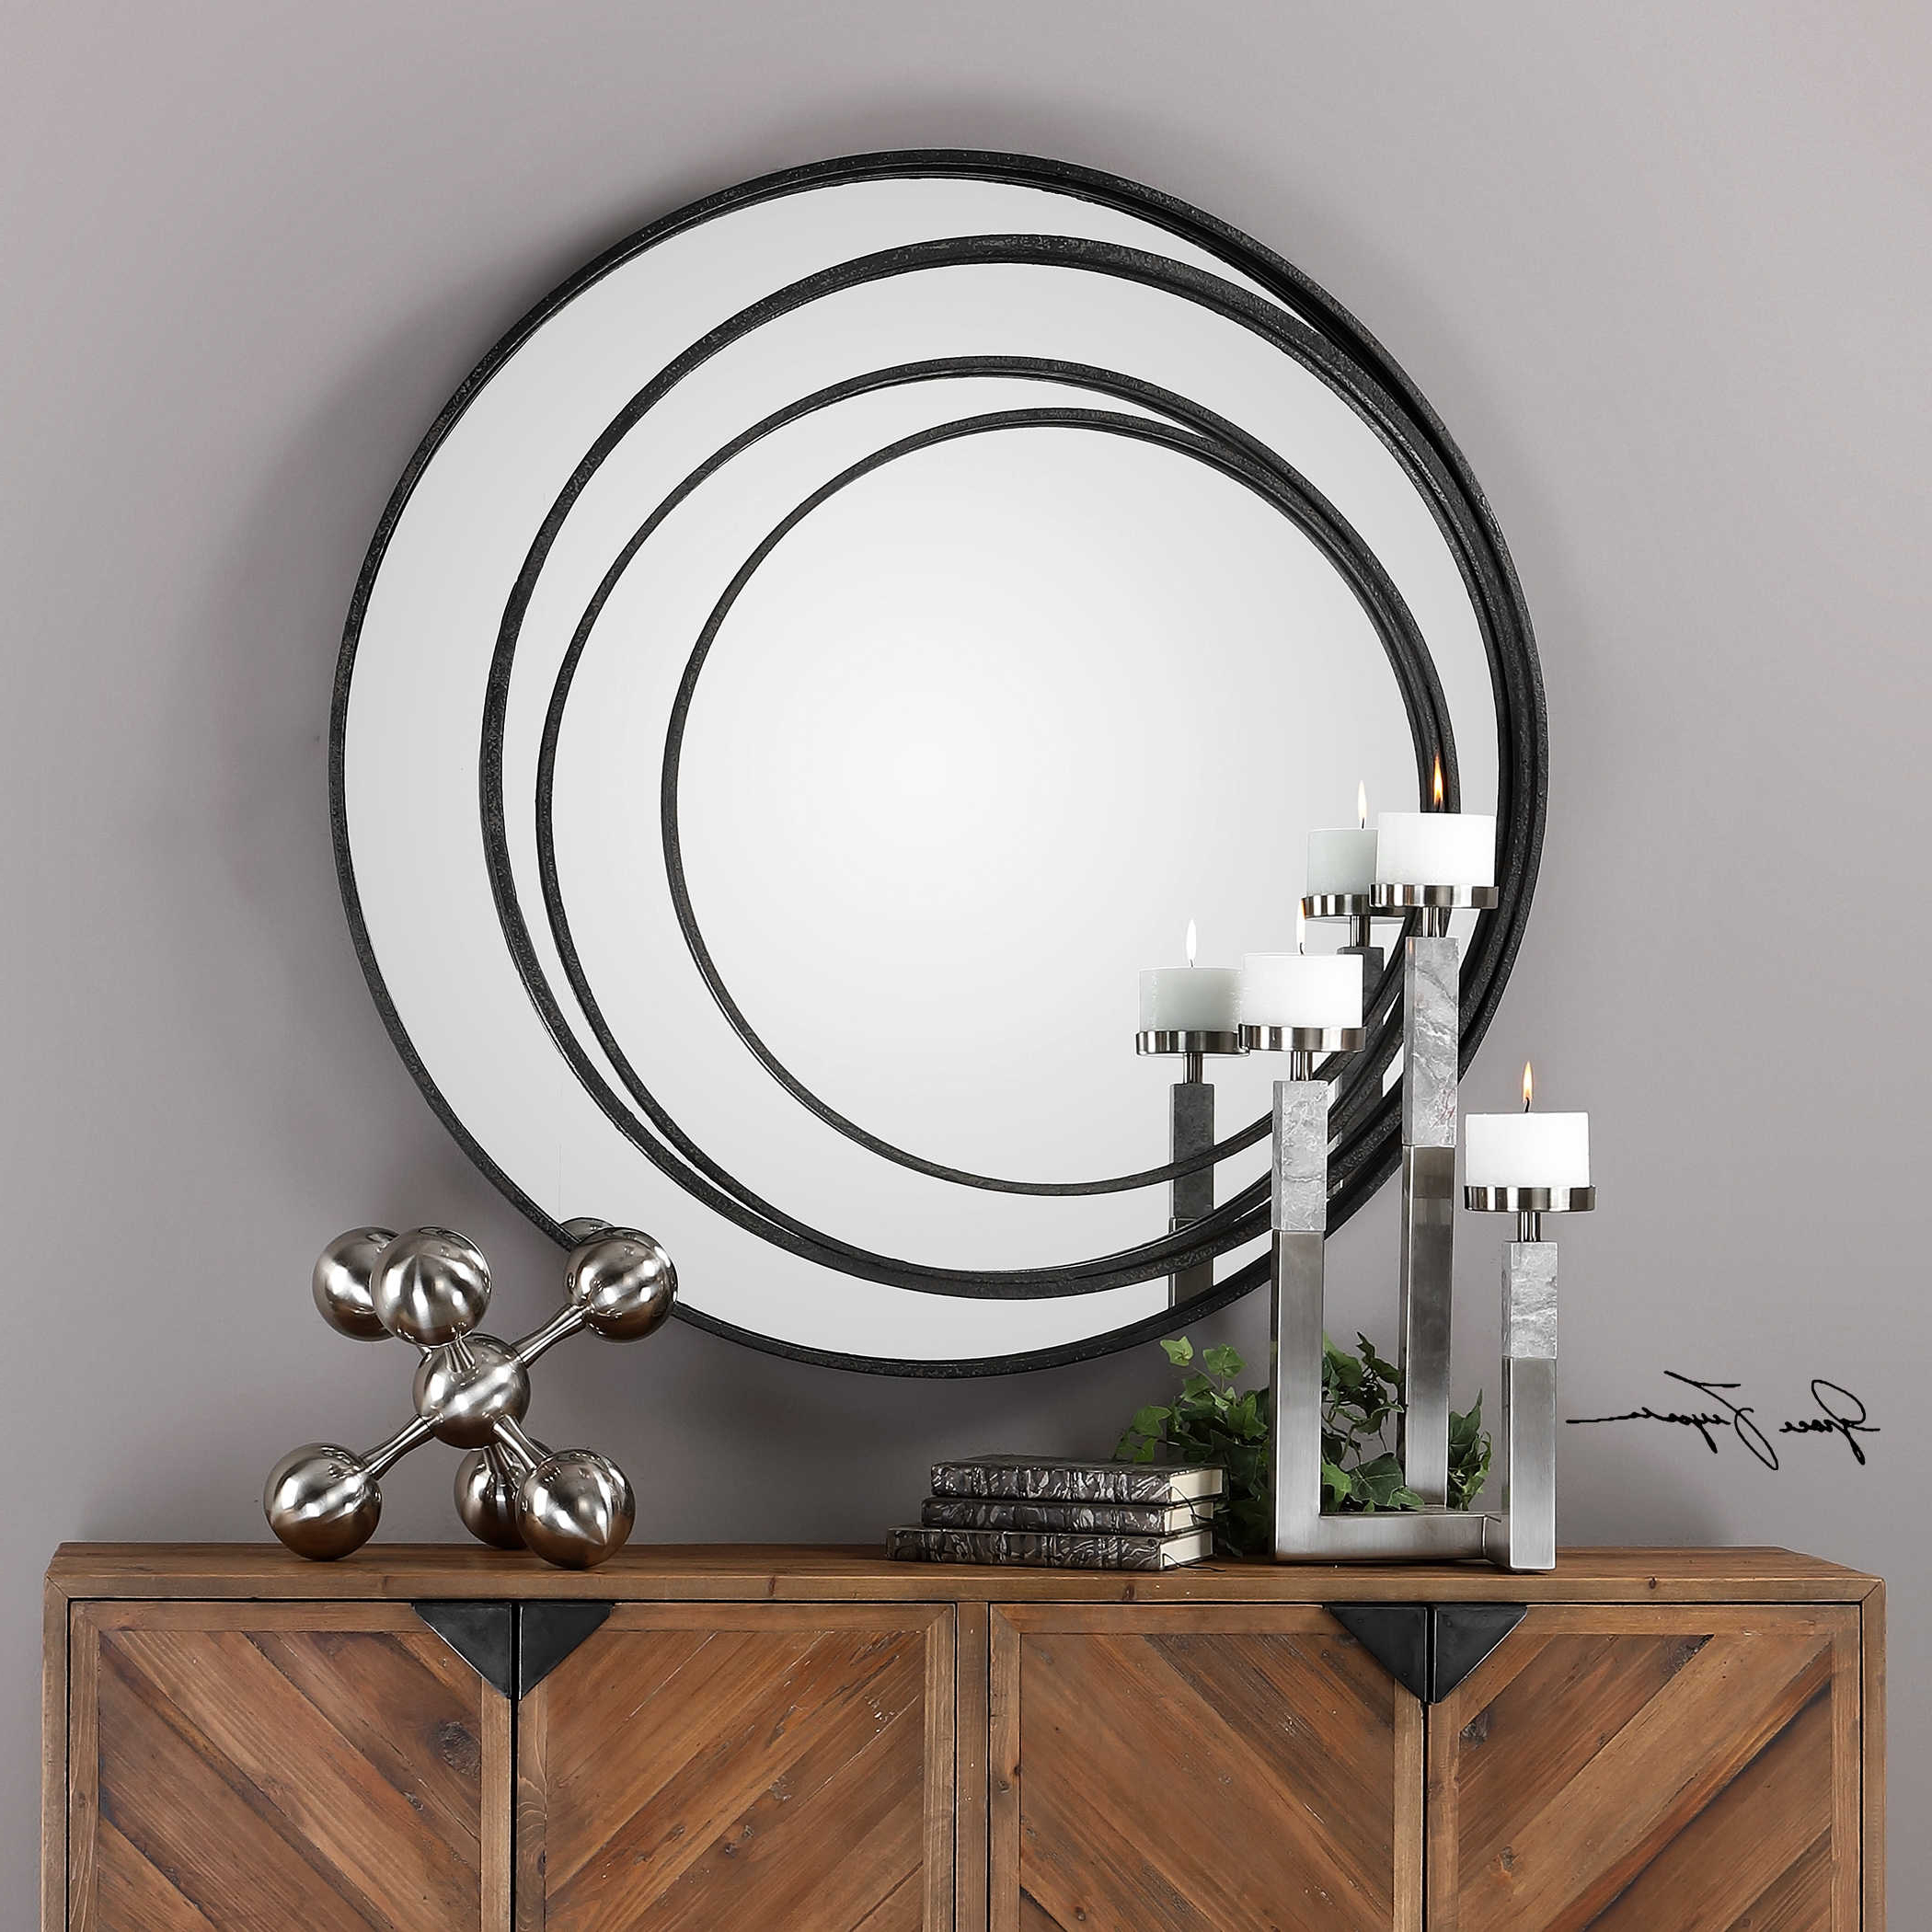 Most Up To Date Uttermost Accent Furniture, Mirrors, Wall Decor, Clocks Within Uttermost Wall Mirrors (View 8 of 20)